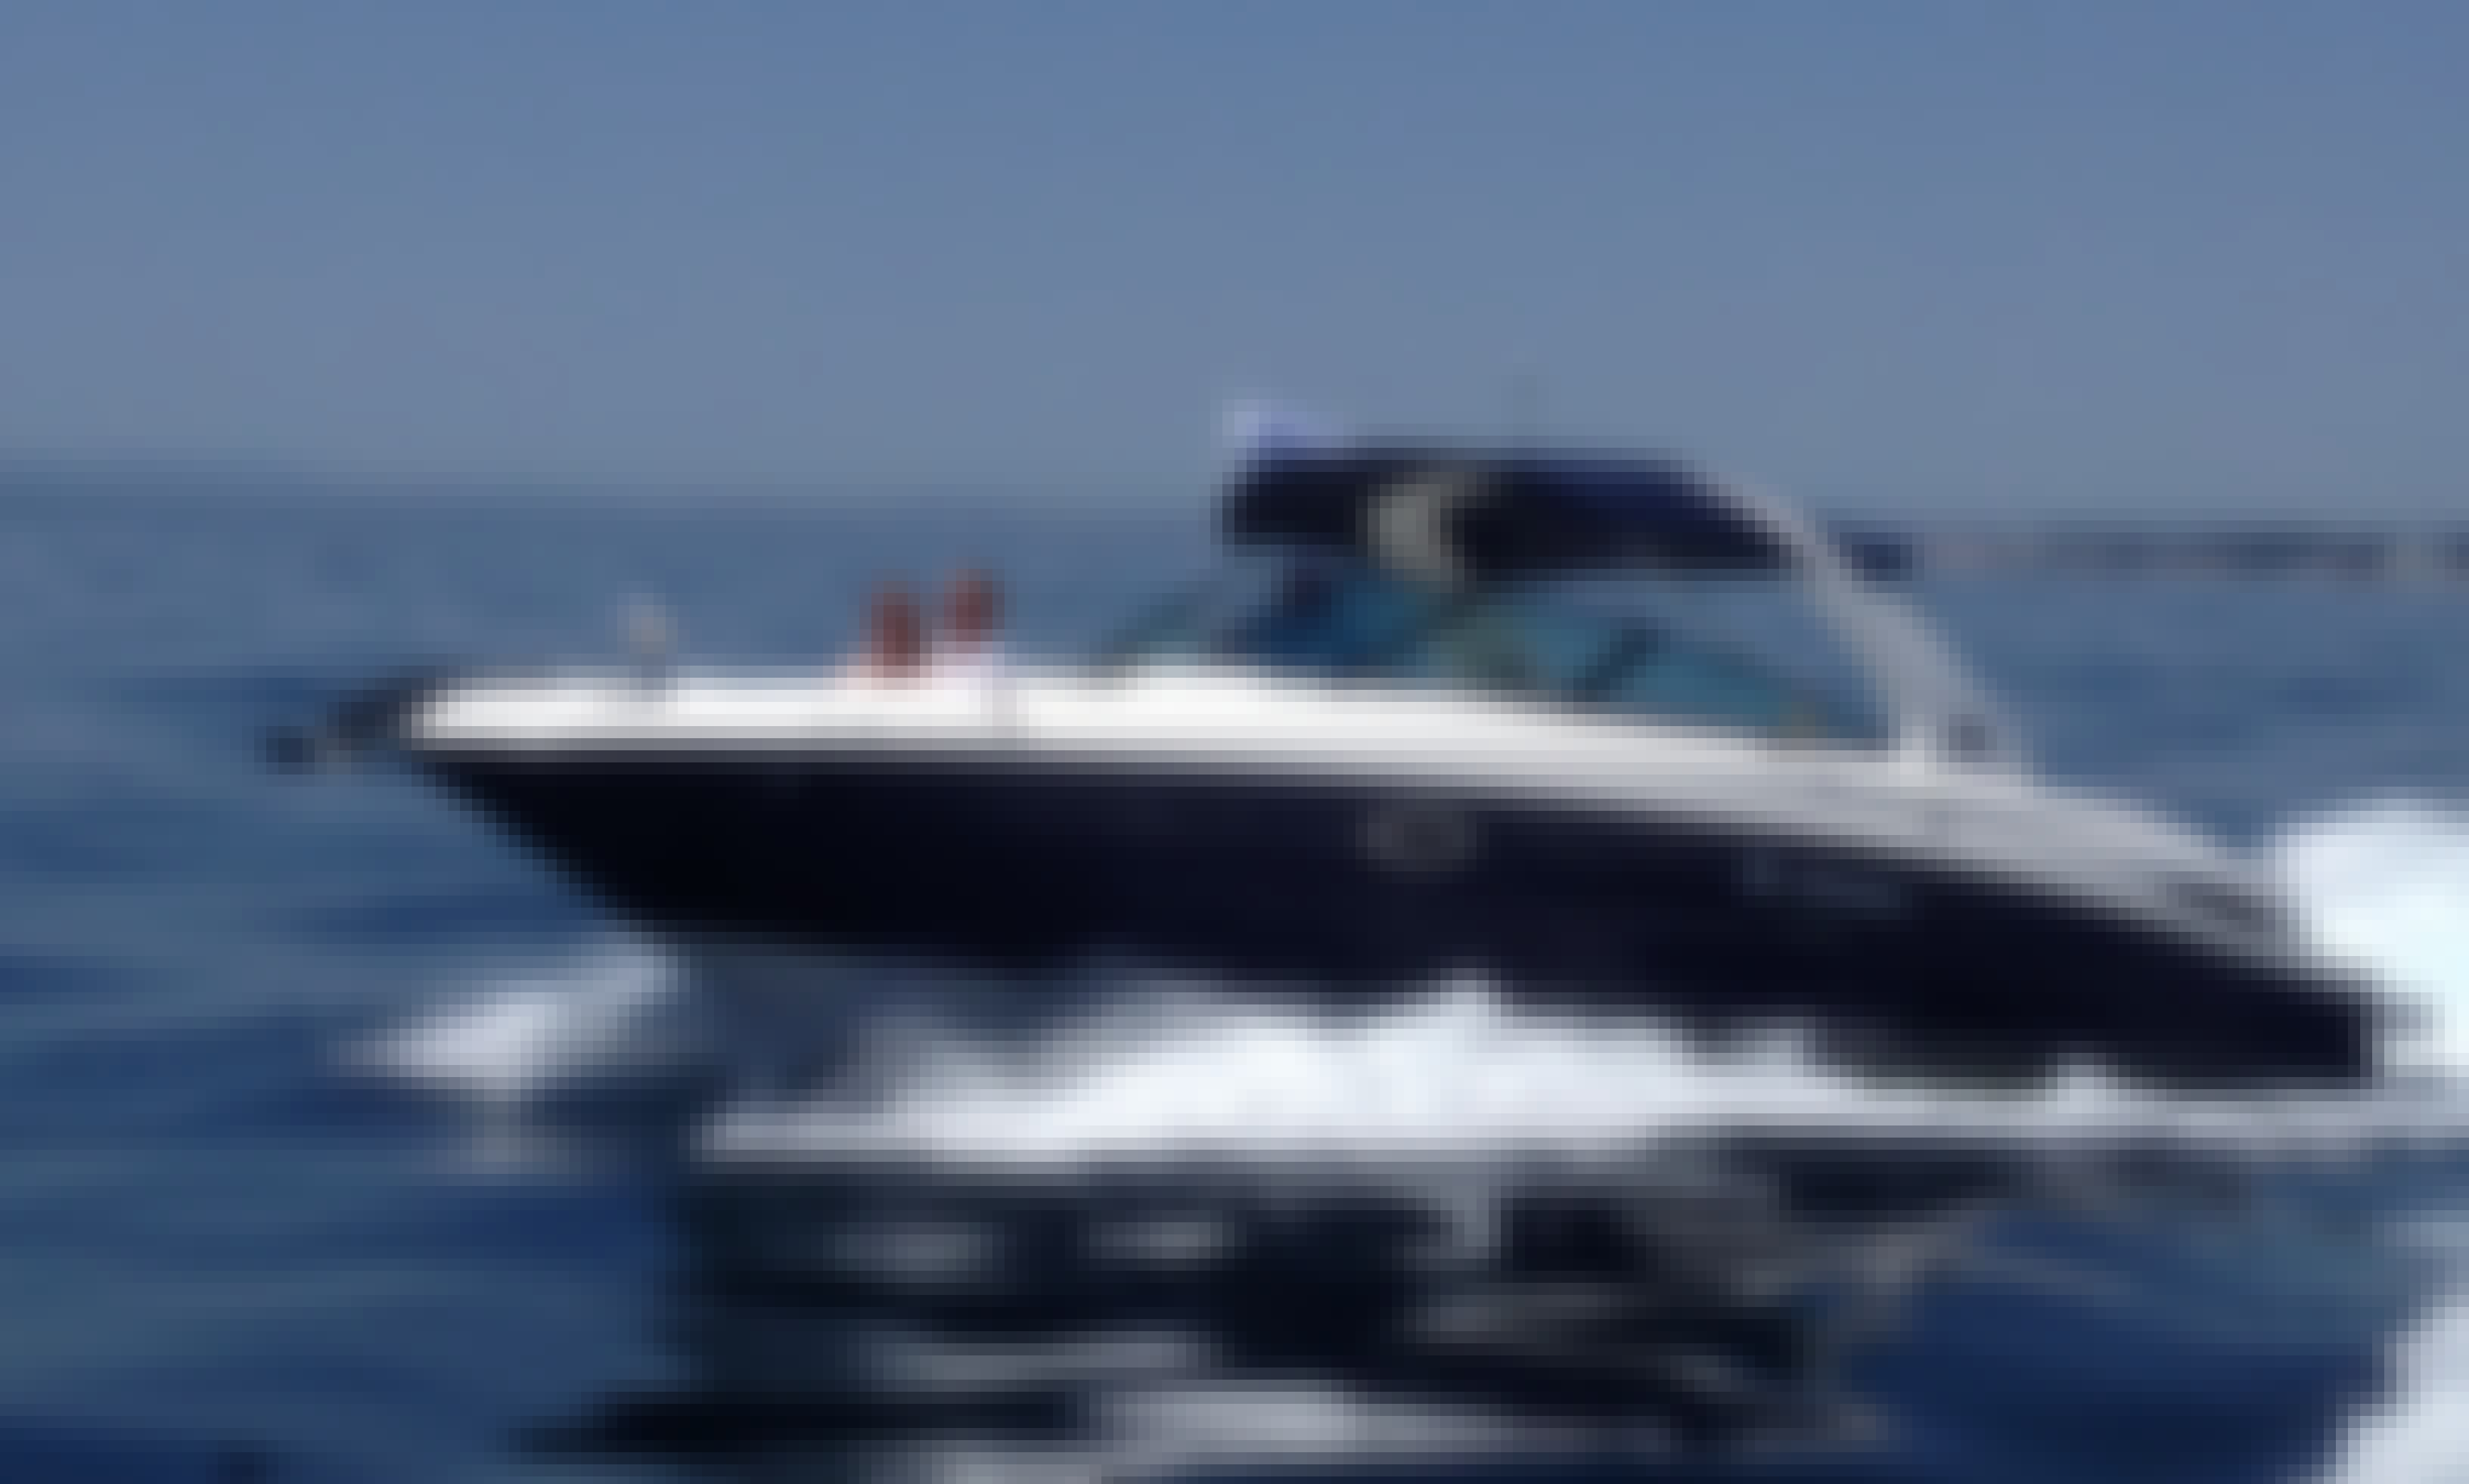 Sea Ray 295 SLX boat charter in marbella